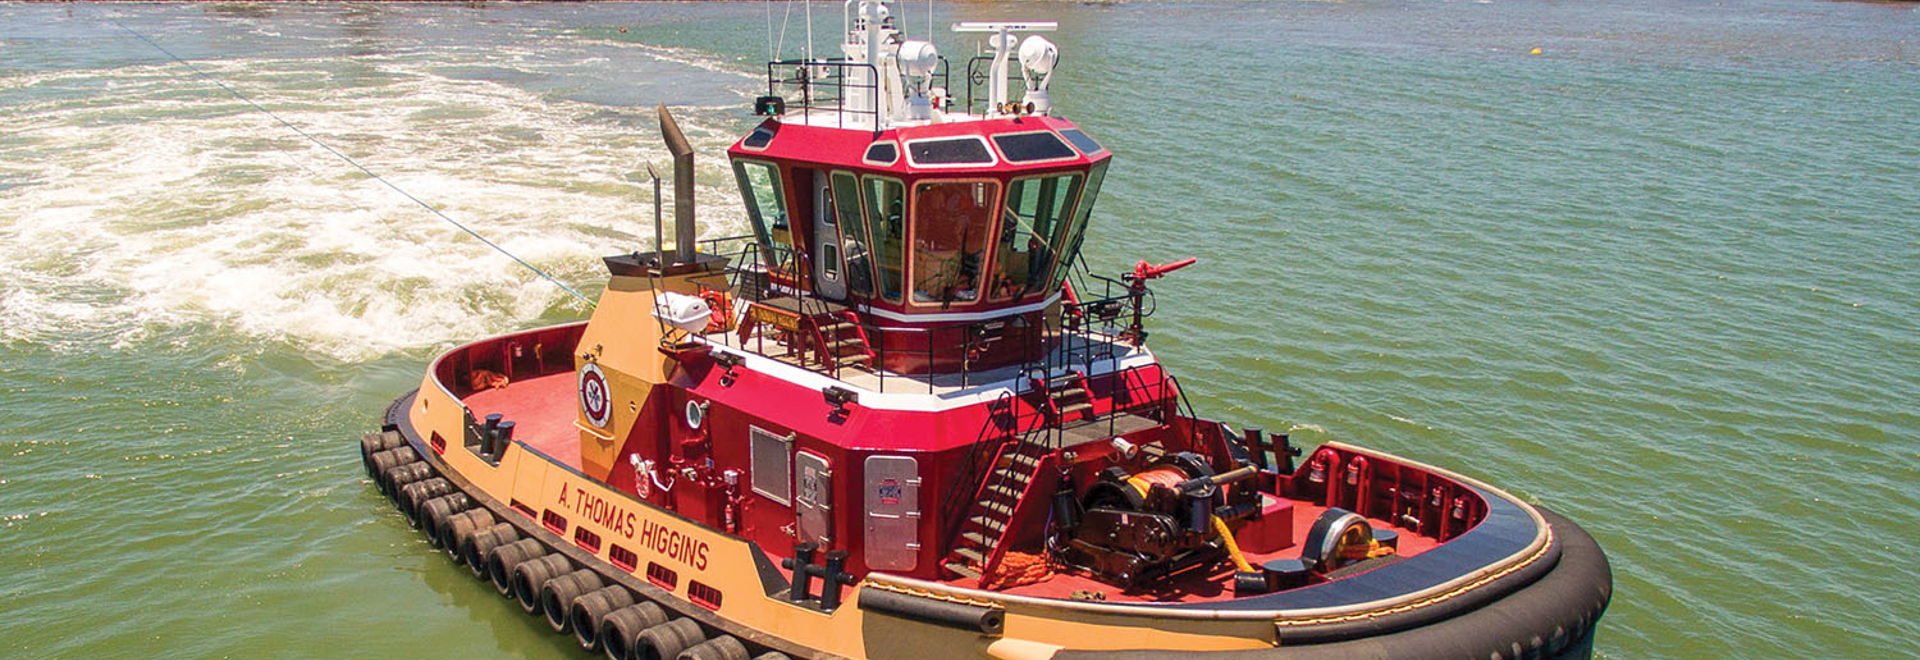 This new Robert Allan-designed RApport 2400 tug has been customized by the designer, builder, and owner to provide specific operational features.